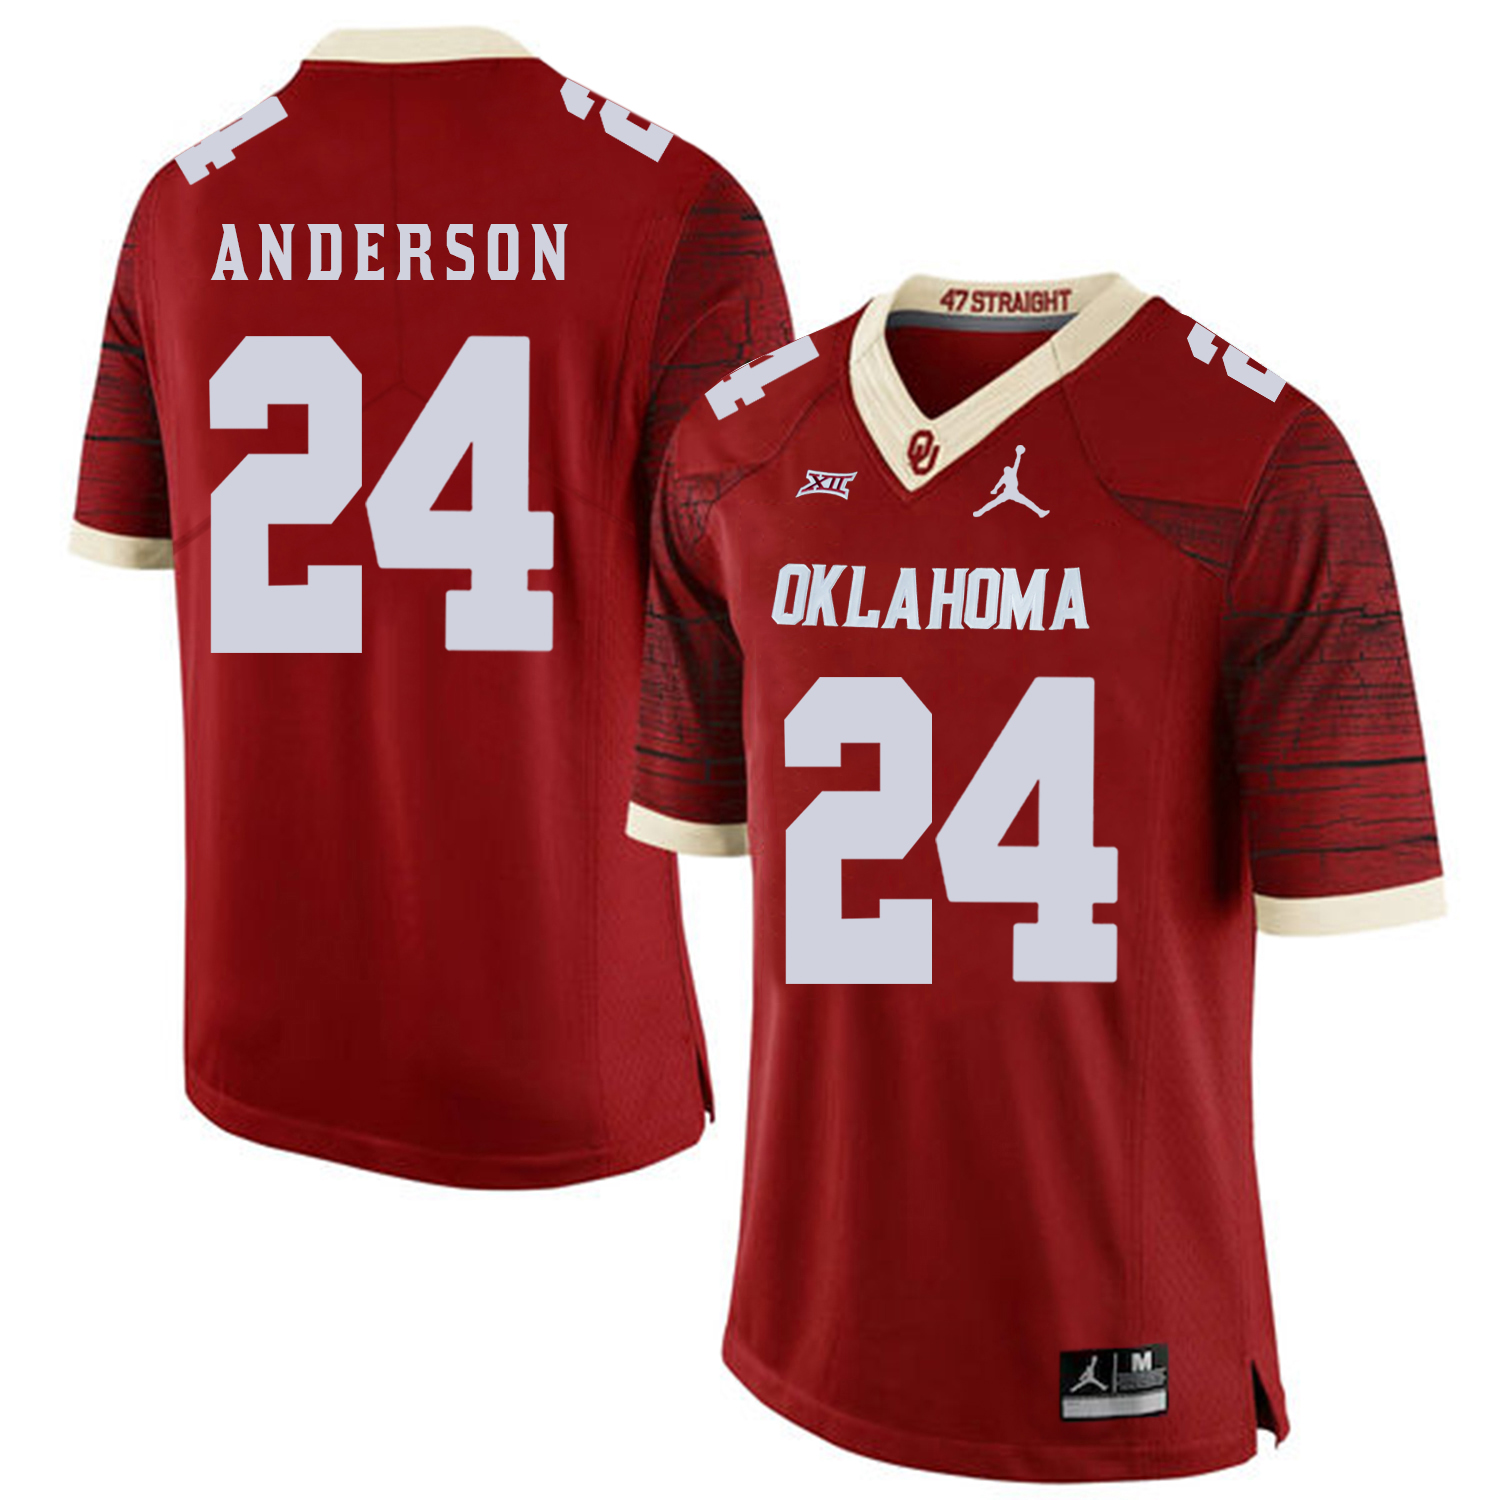 Oklahoma Sooners 24 Rodney Anderson Red 47 Game Winning Streak College Football Jersey